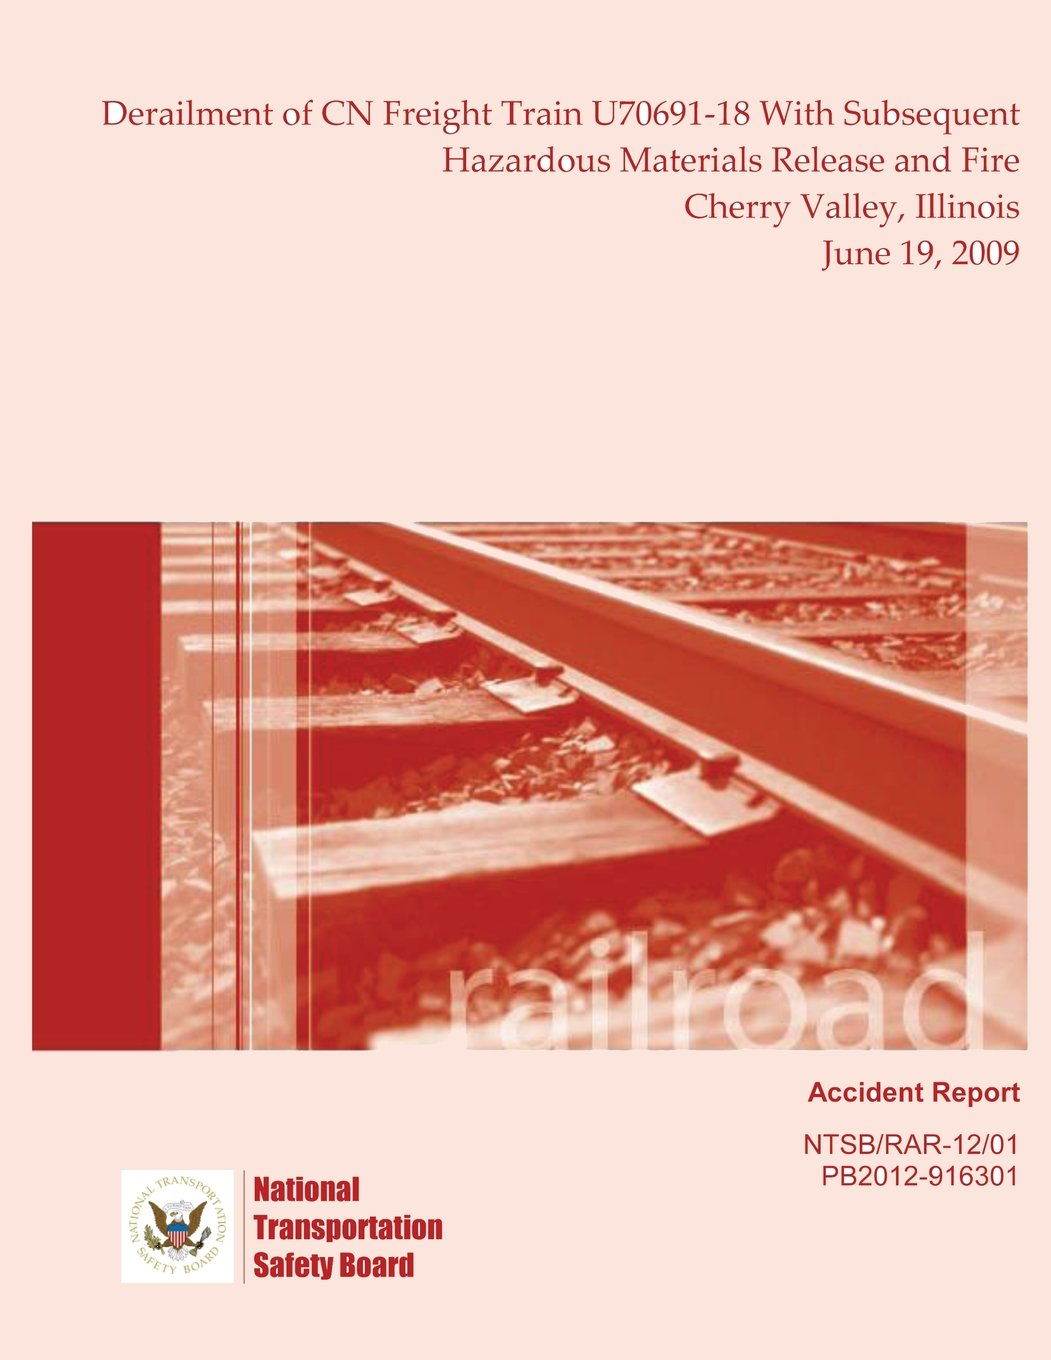 Railroad Accident Report Derailment of CN Freight Train U70691-18 With Subsequent Hazardous Materials Release and Fire Cherry Valley, Illinois June 19, 2009